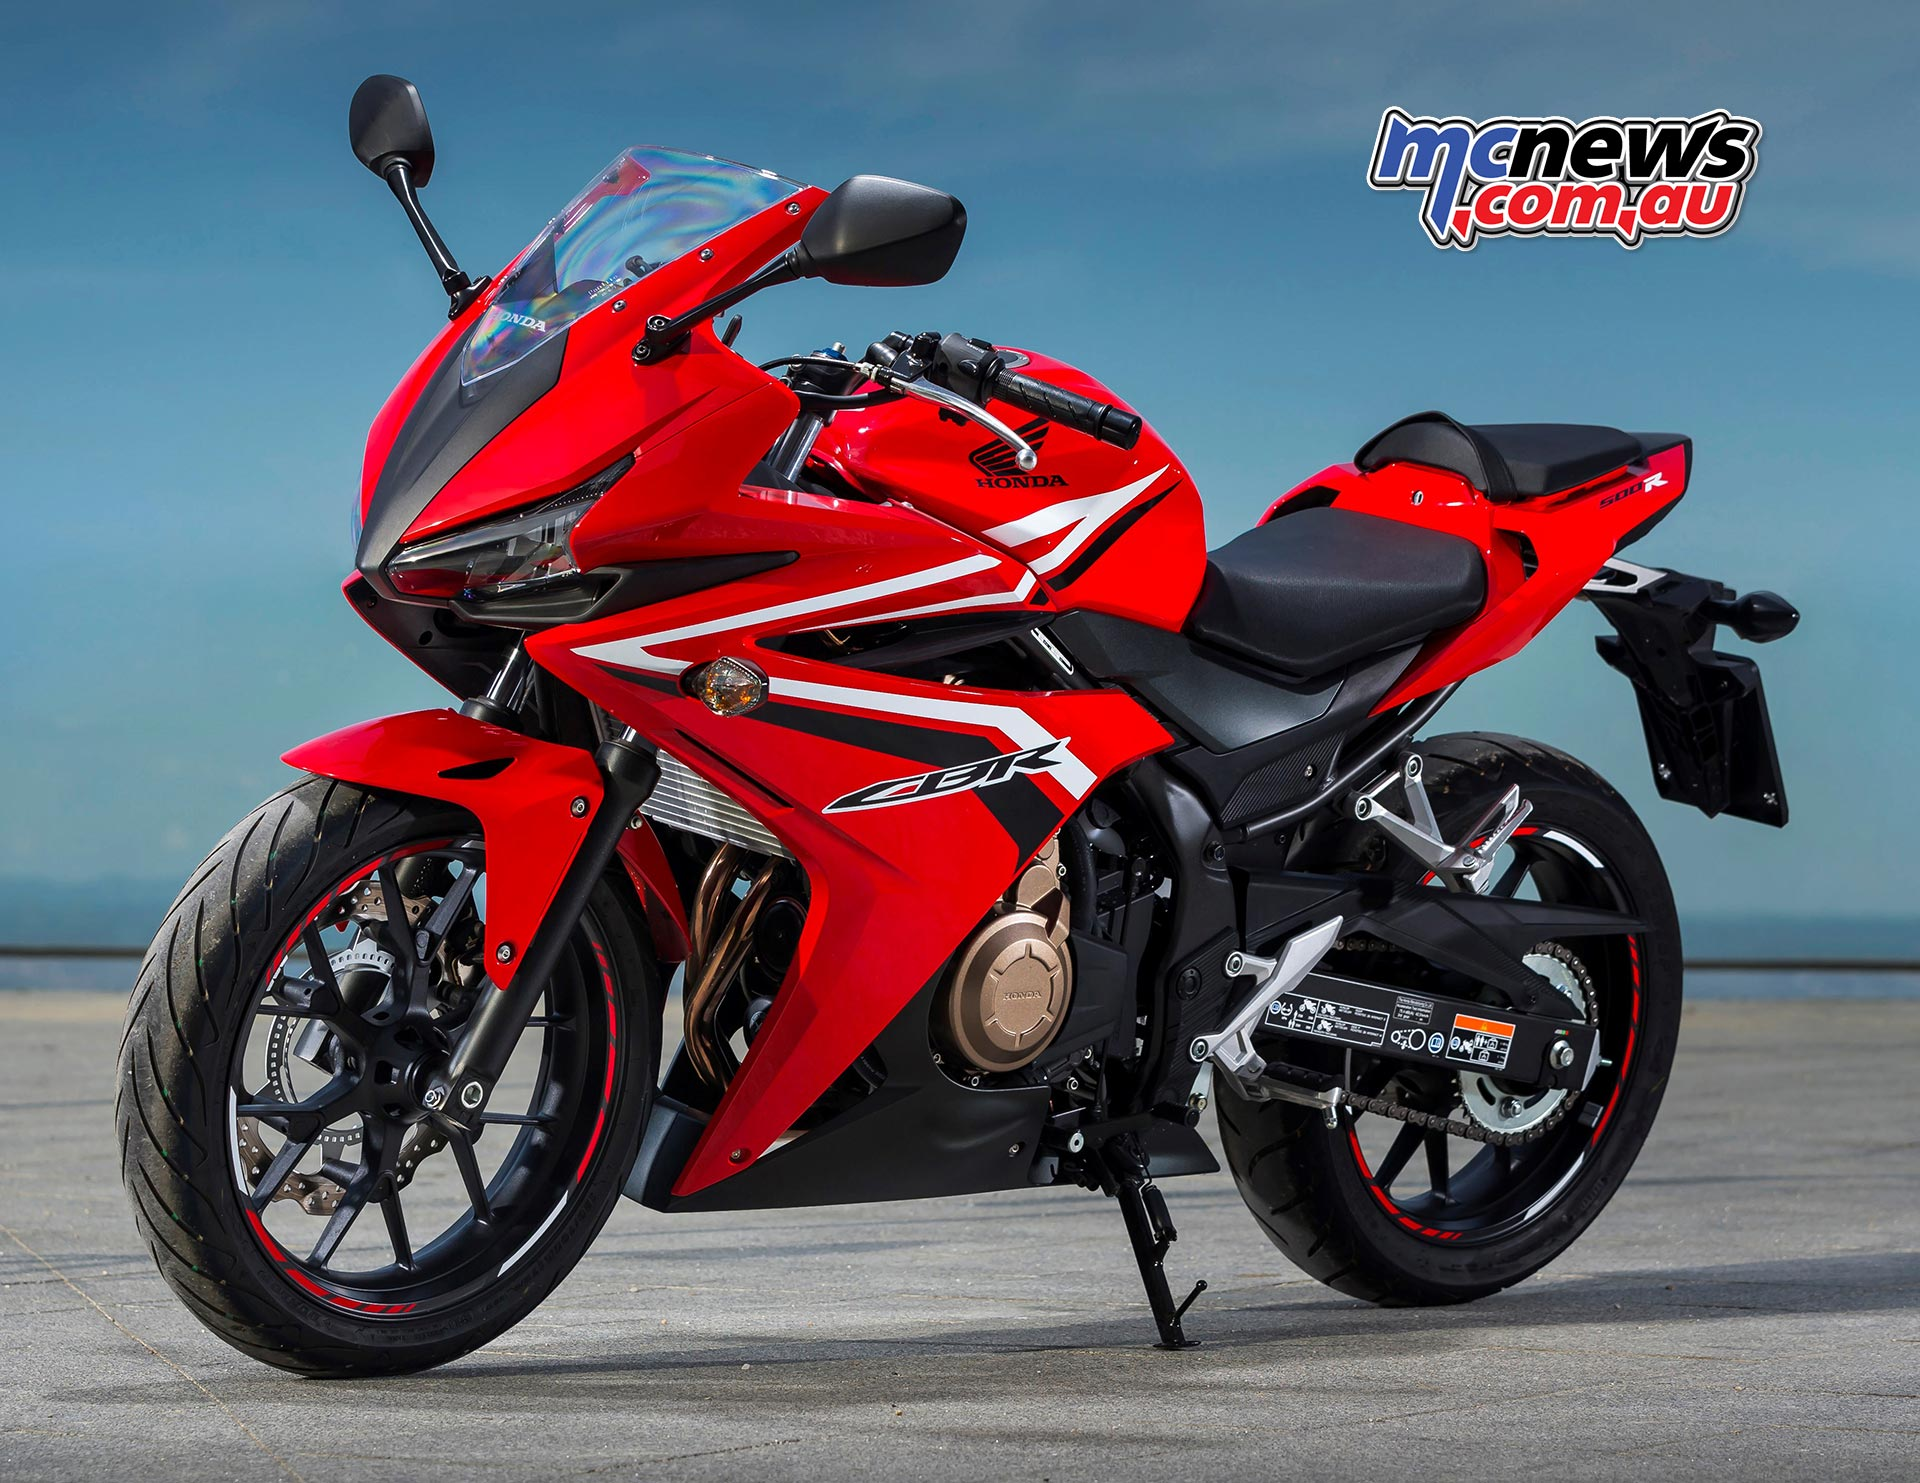 Free On Road Costs With Honda Cbr500r Mcnewscomau